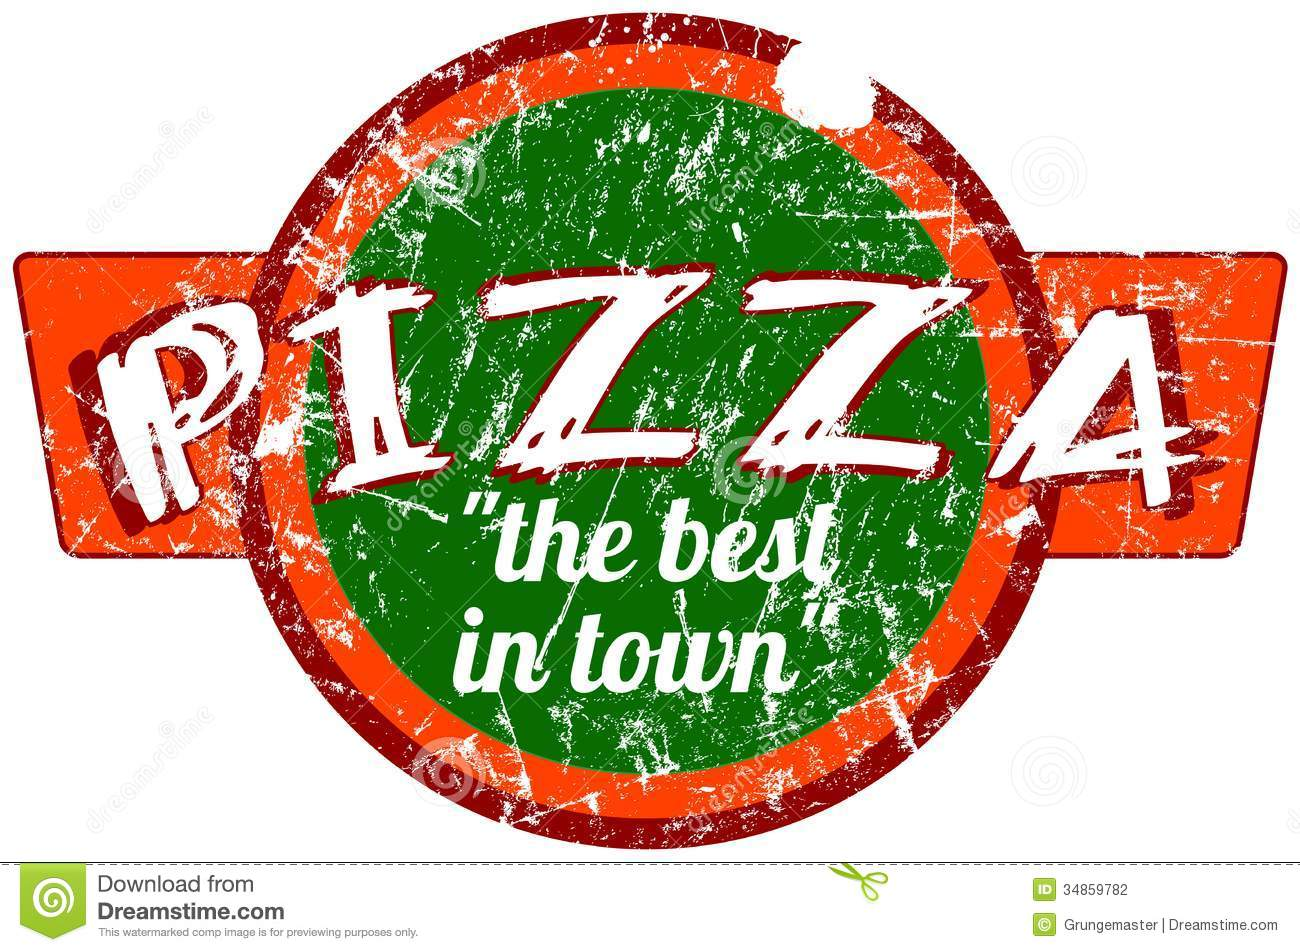 Pizza Sign Stock Vector Image Of Urban, Pepperoni, Dining. Handwritten Signs. Bradycardia Signs. Boy Sign Signs Of Stroke. Road Safety Signs. Literary Signs. Blanket Signs. Segregation Signs Of Stroke. Headlights Signs